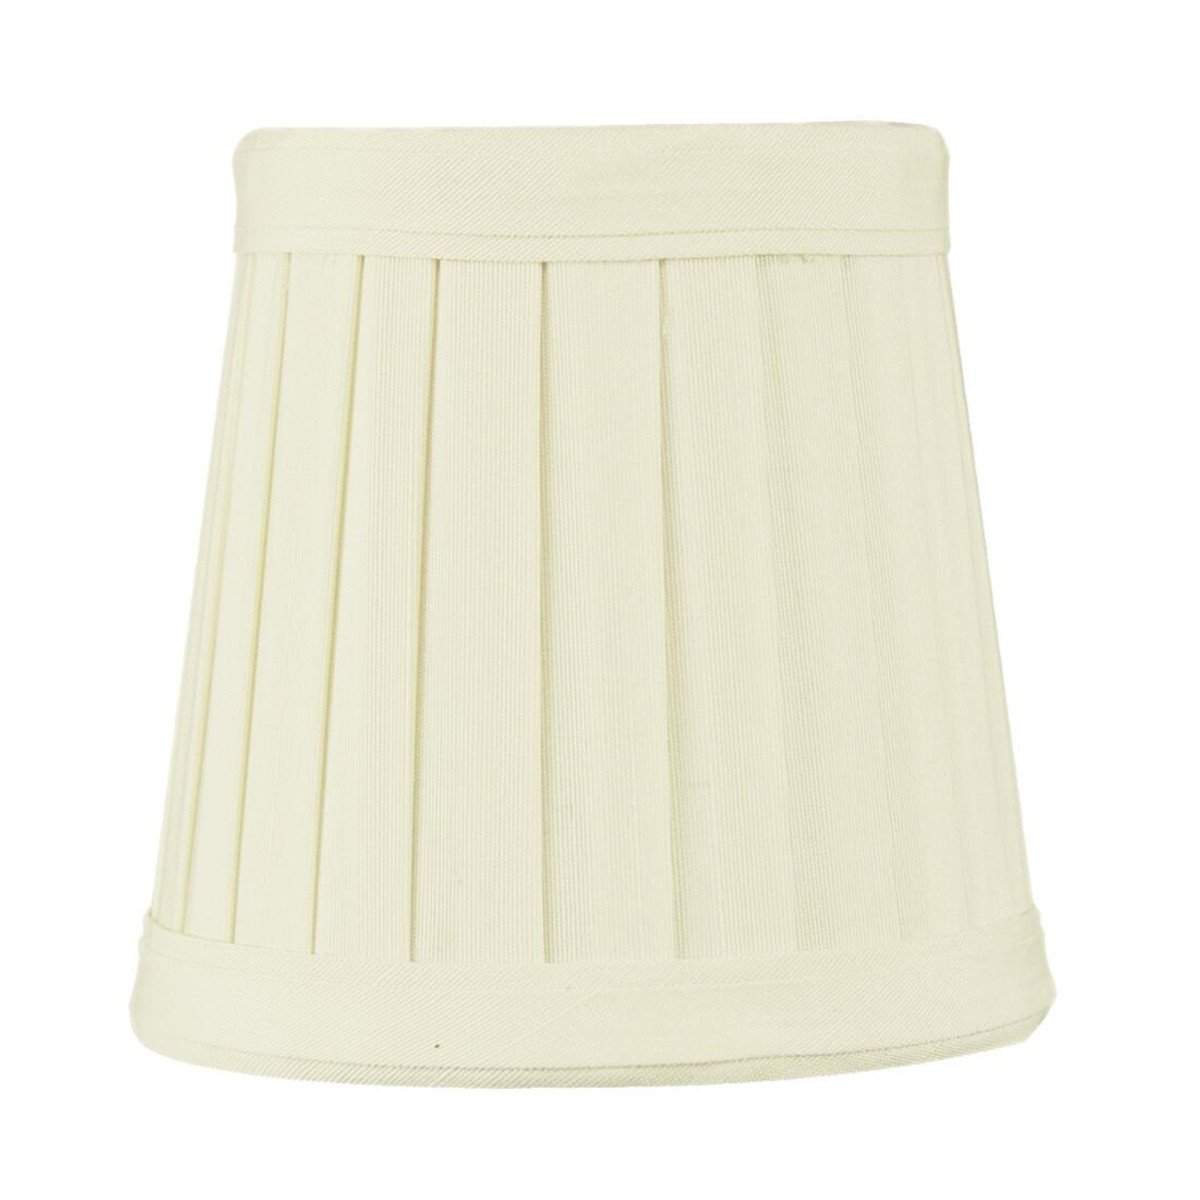 3x4x4 Crisp Linen Pleated Clip-on Candelabra Lampshade By Home Concept - Perfect for chandeliers, foyer lights, and wall sconces - Small, Egg Shell